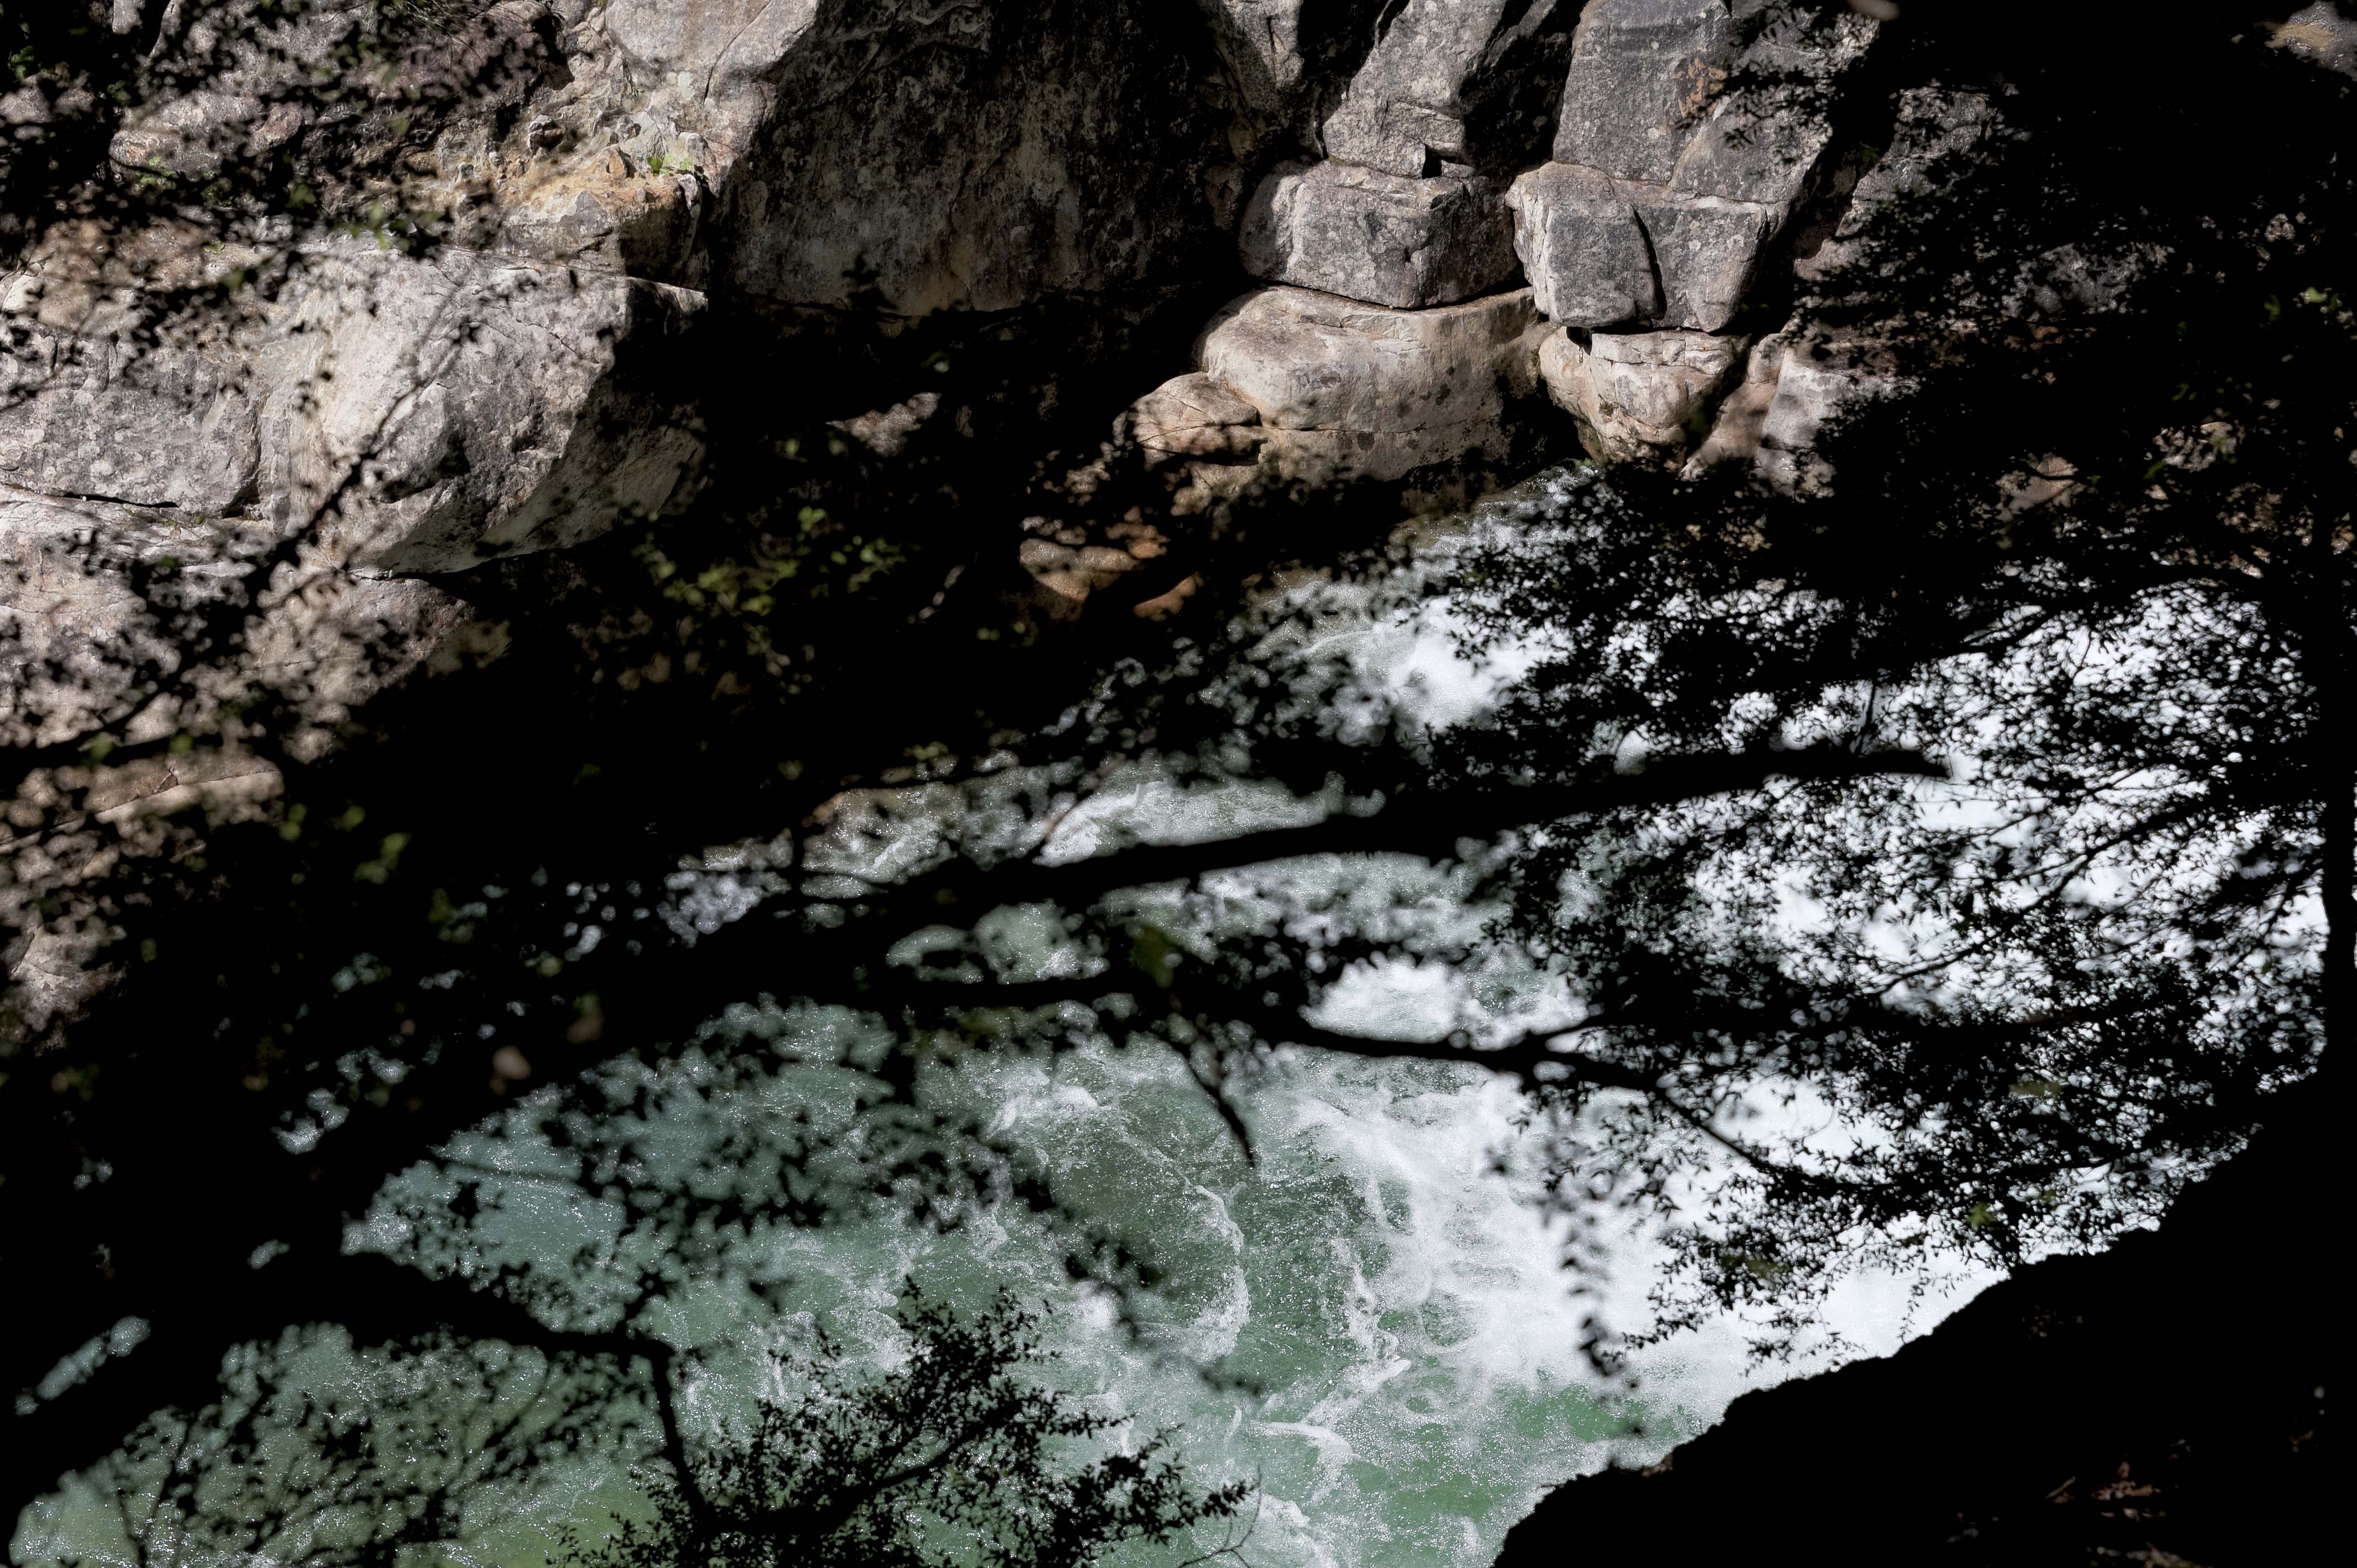 6552_Canyon d'Anisclo (Sobrarbe)